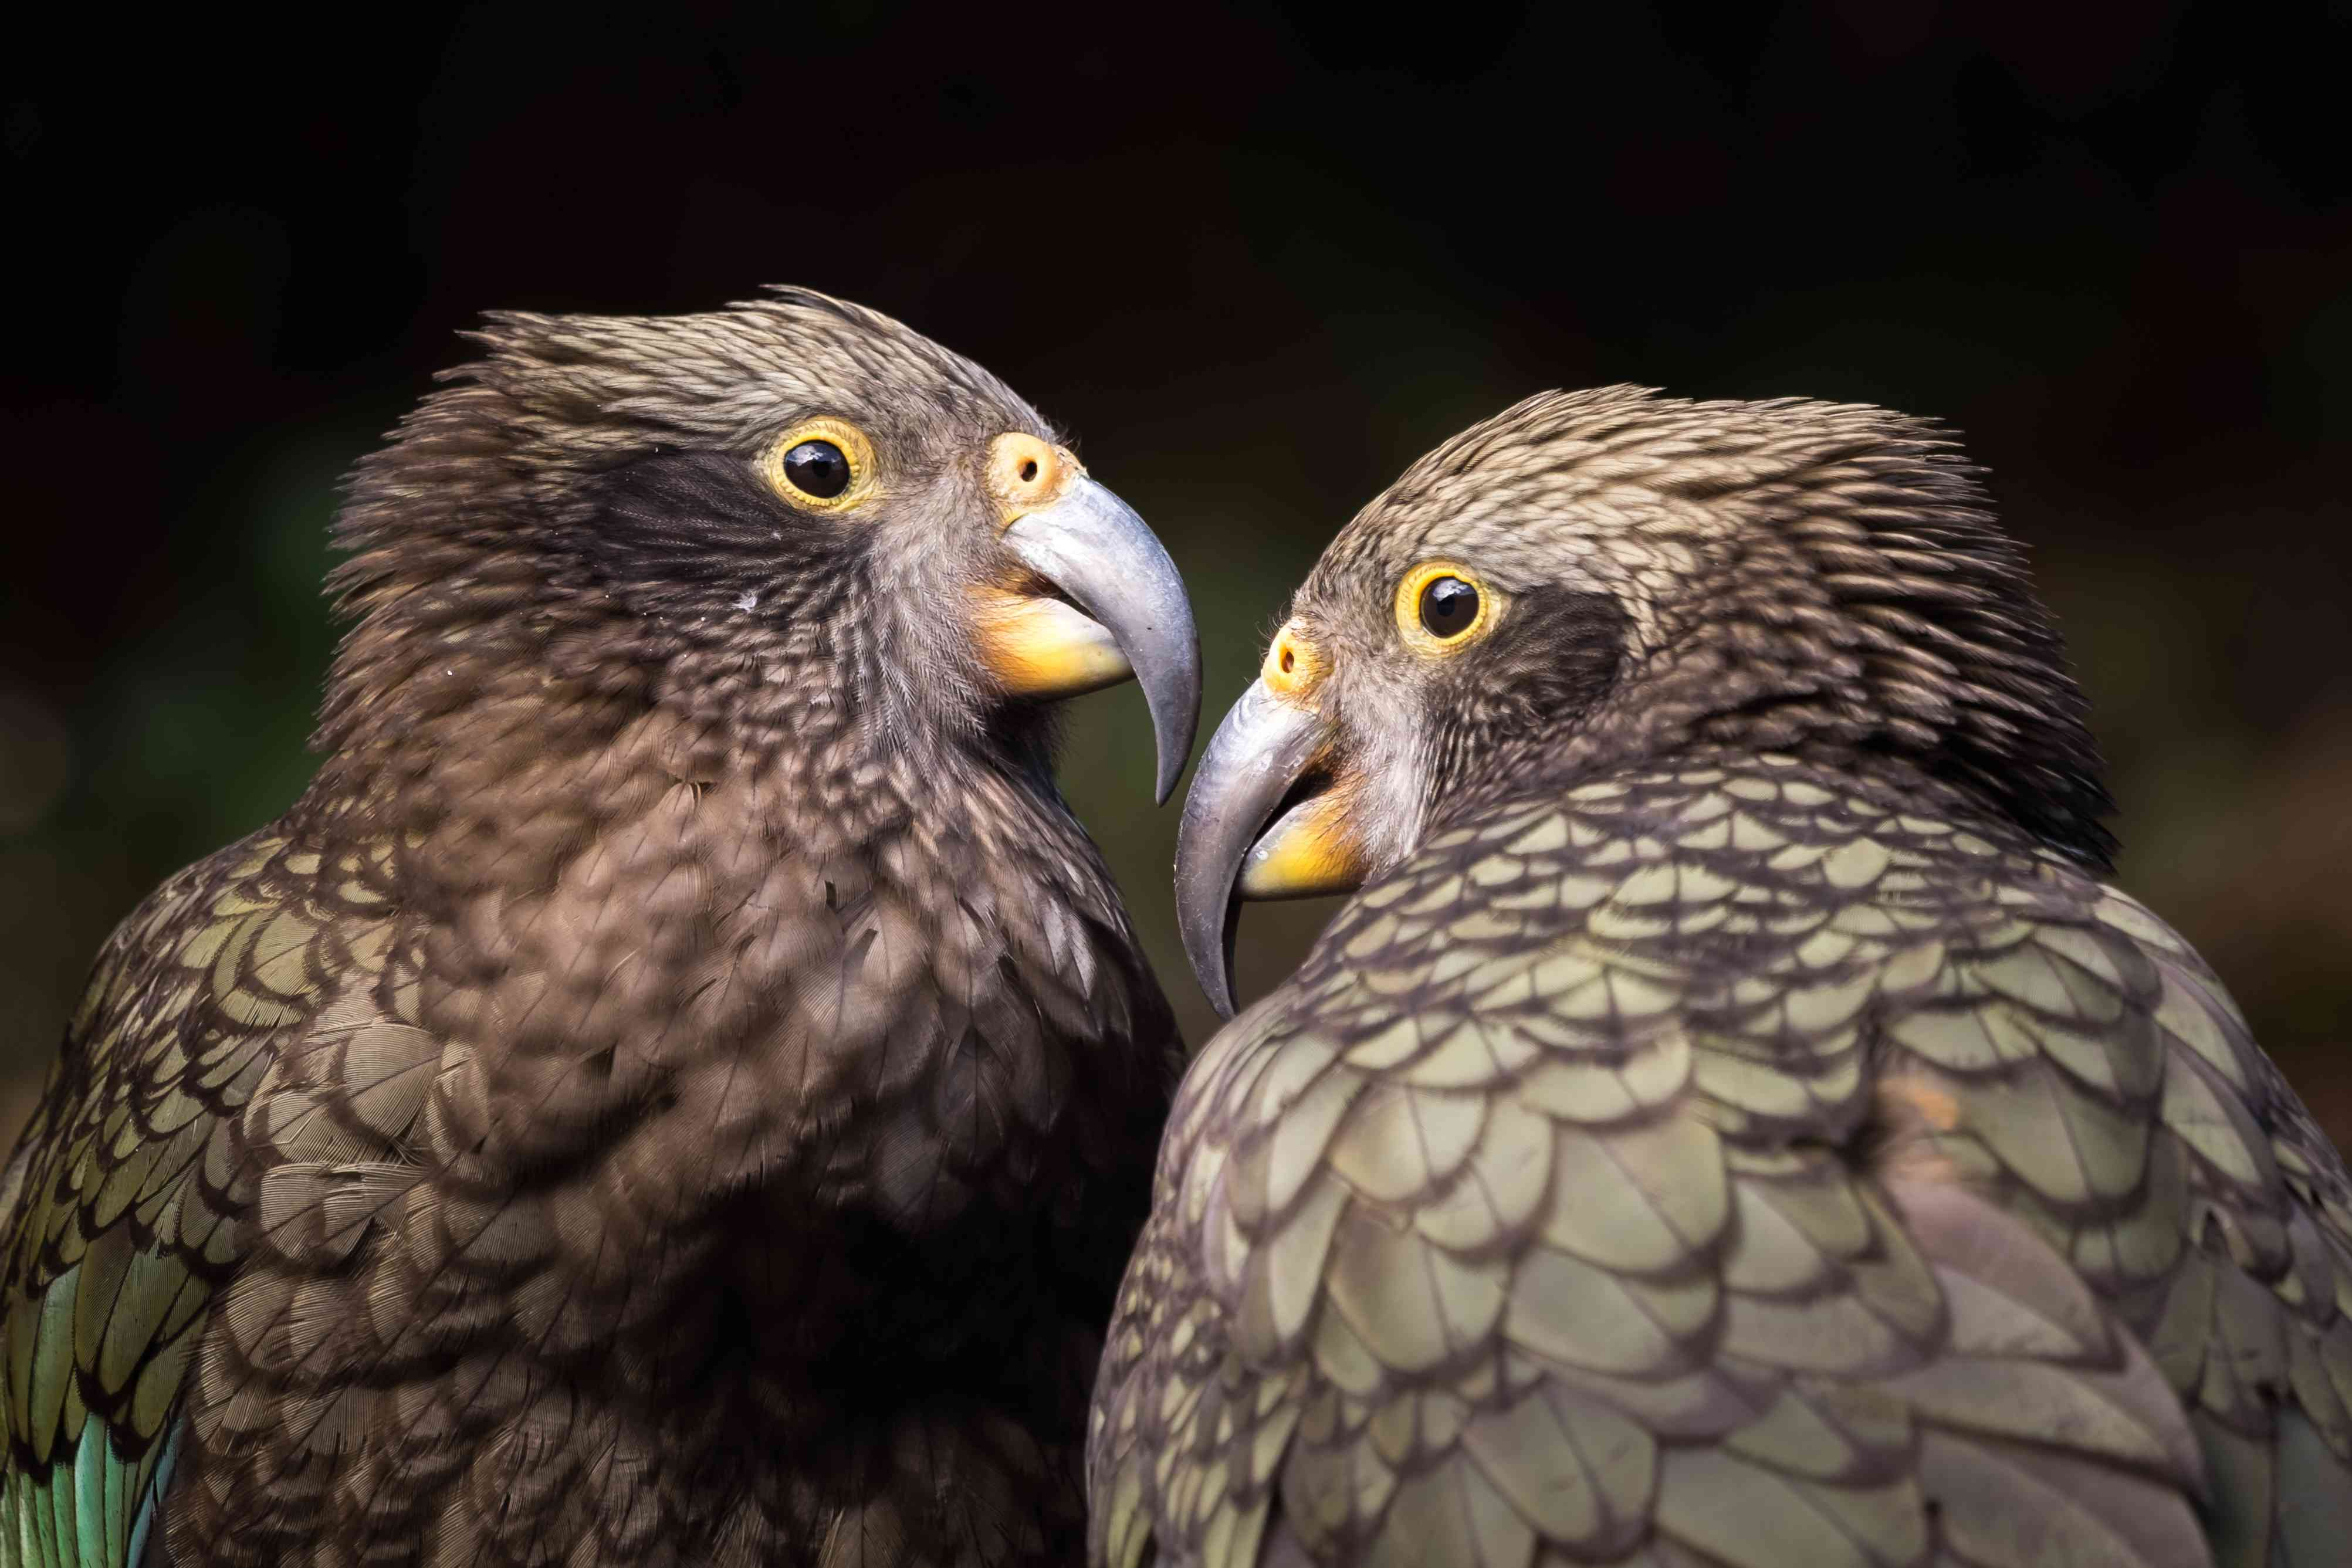 A male and female Kea look at each other at Arthur's Pass, New Zealand